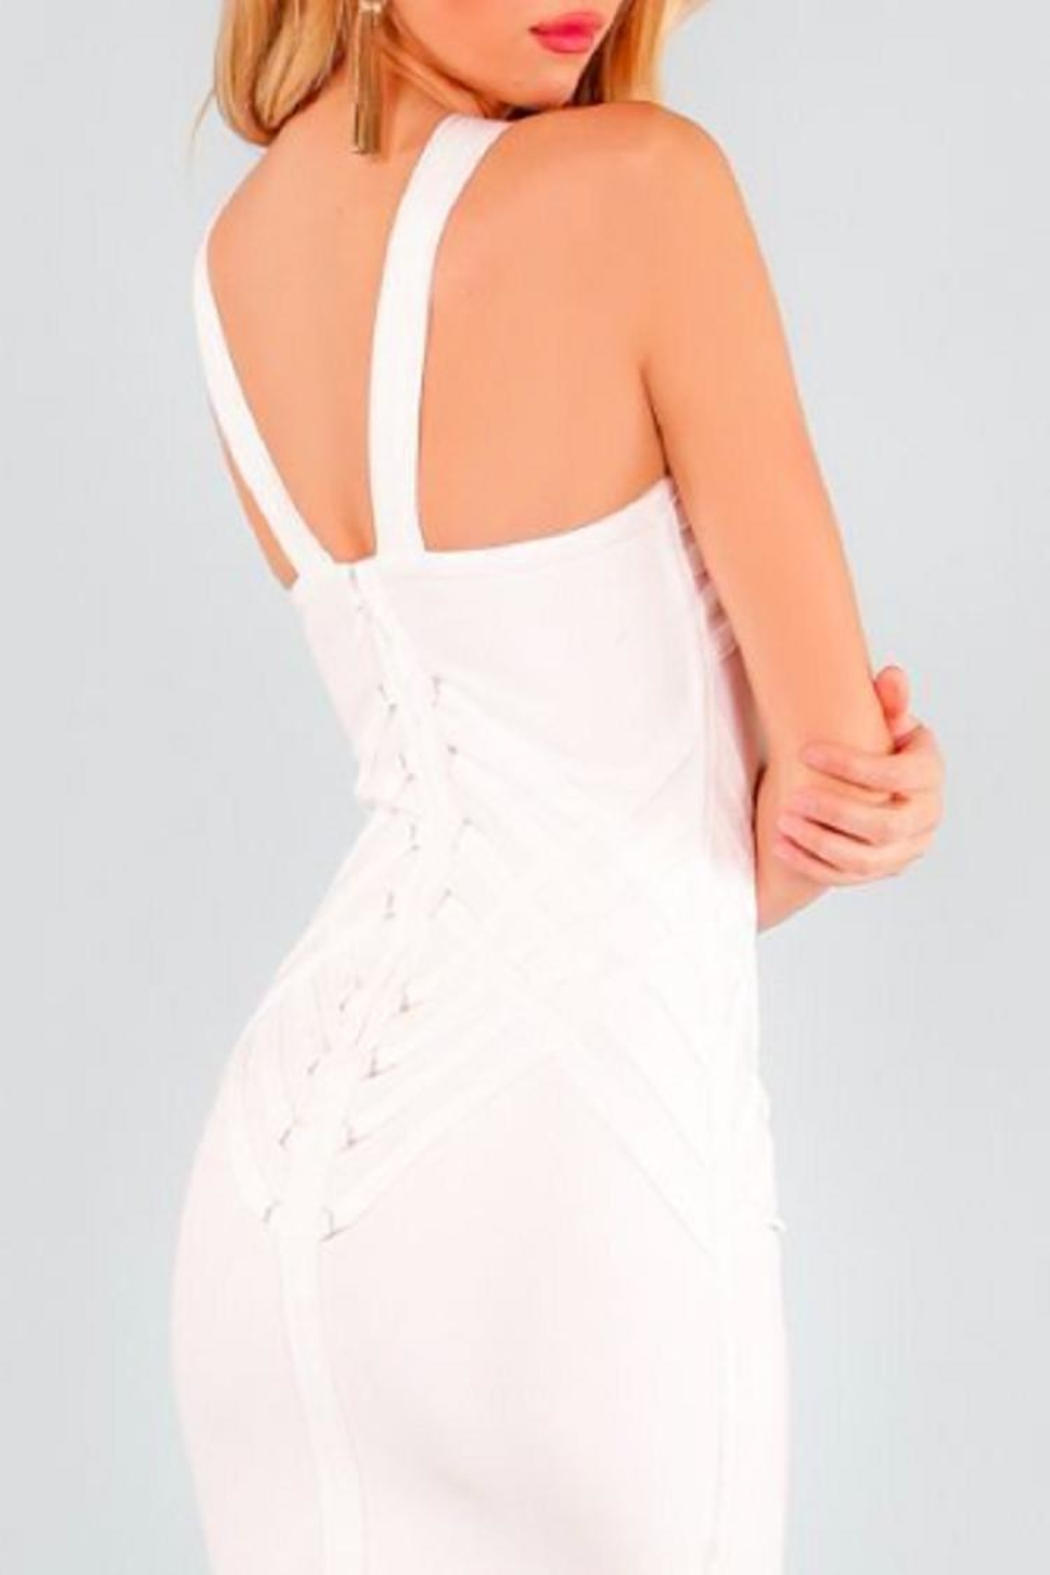 1e6c88bedfb8f1 Wow Couture It's-Party-Time White Bandage-Dress from Massachusetts ...